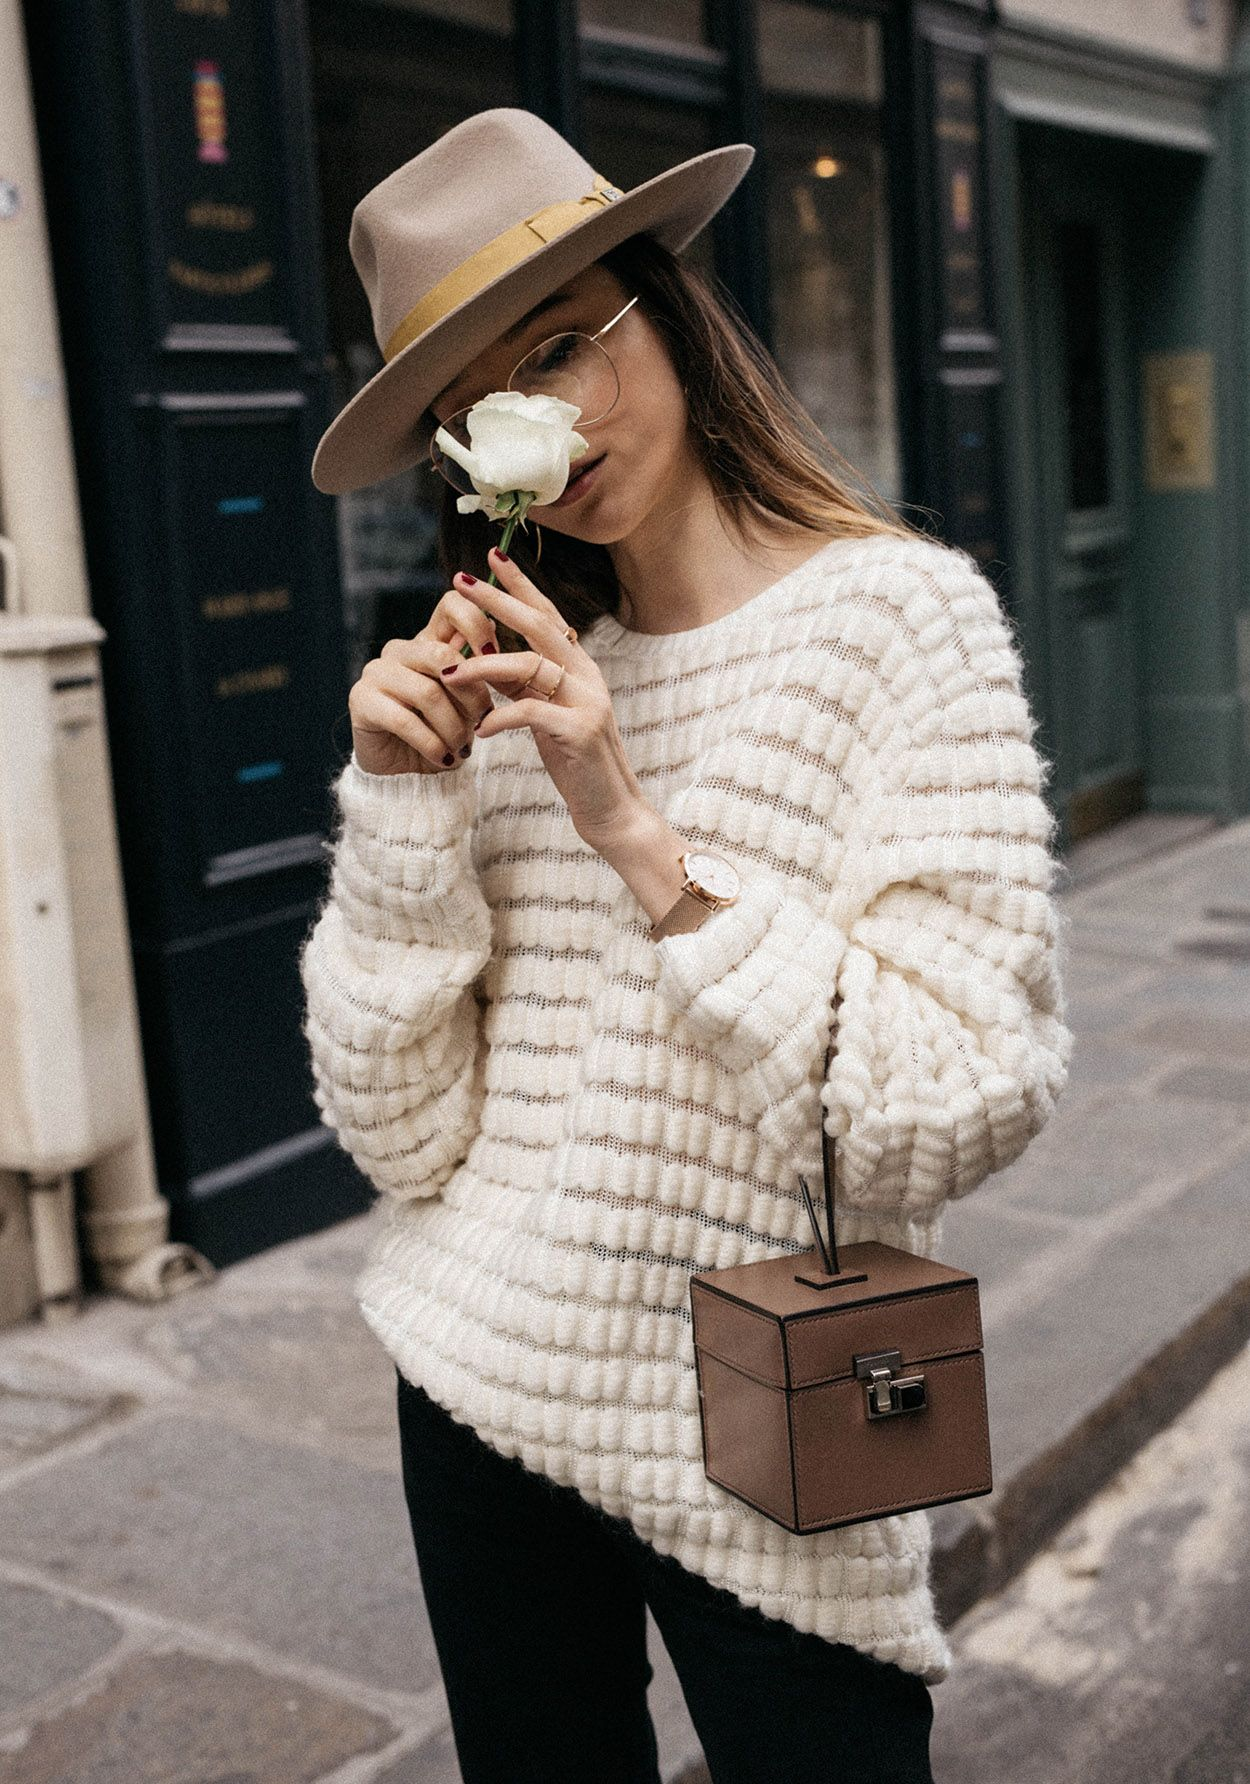 The White Rose And Moynat Vanity Case Bag Inspiration